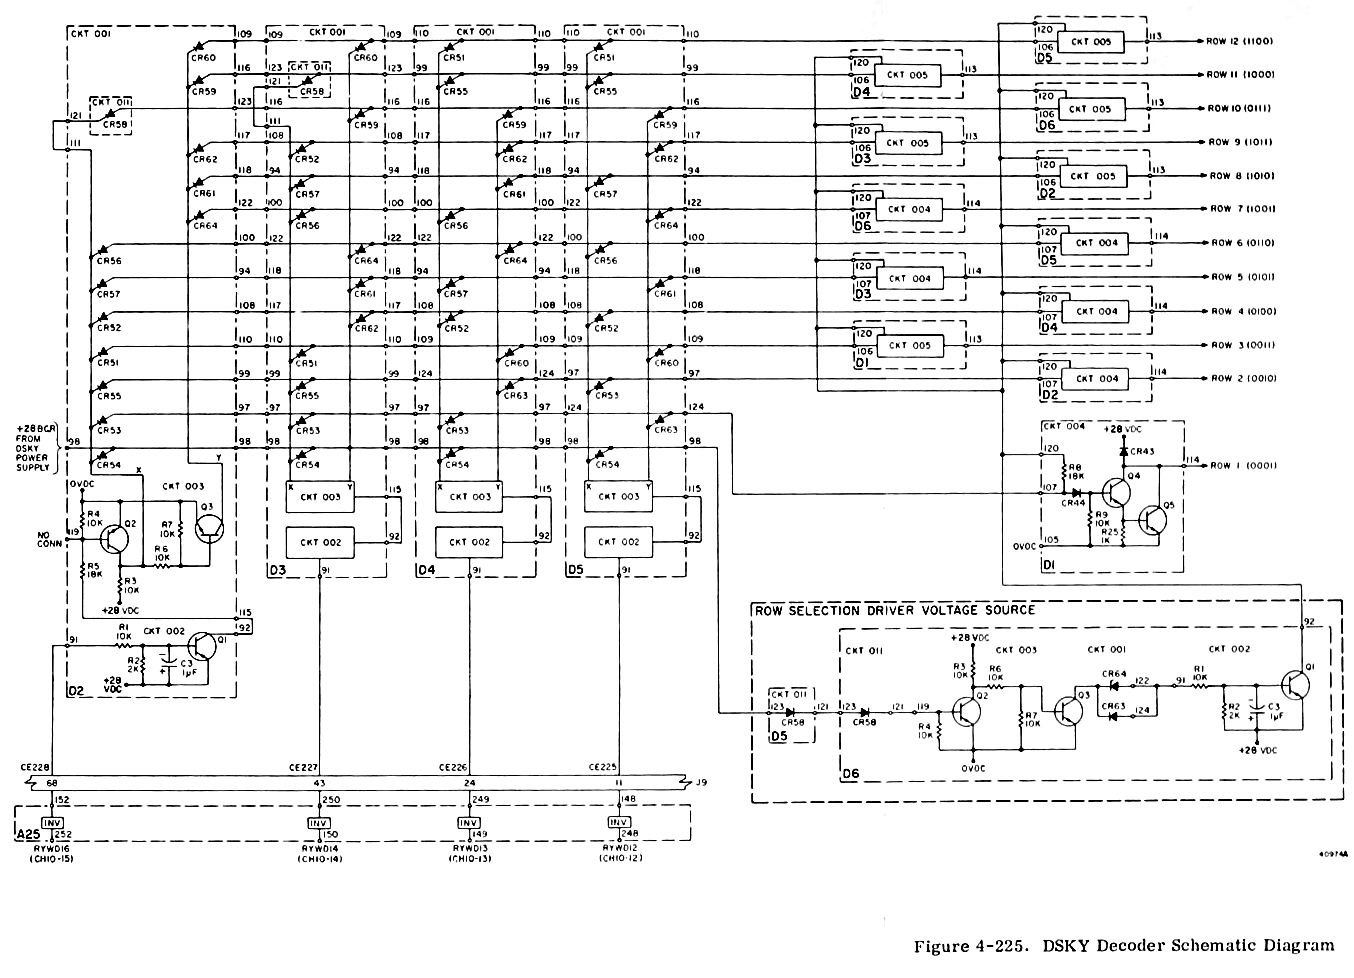 Logic Circuit Diagram Of Encoder And Decoder